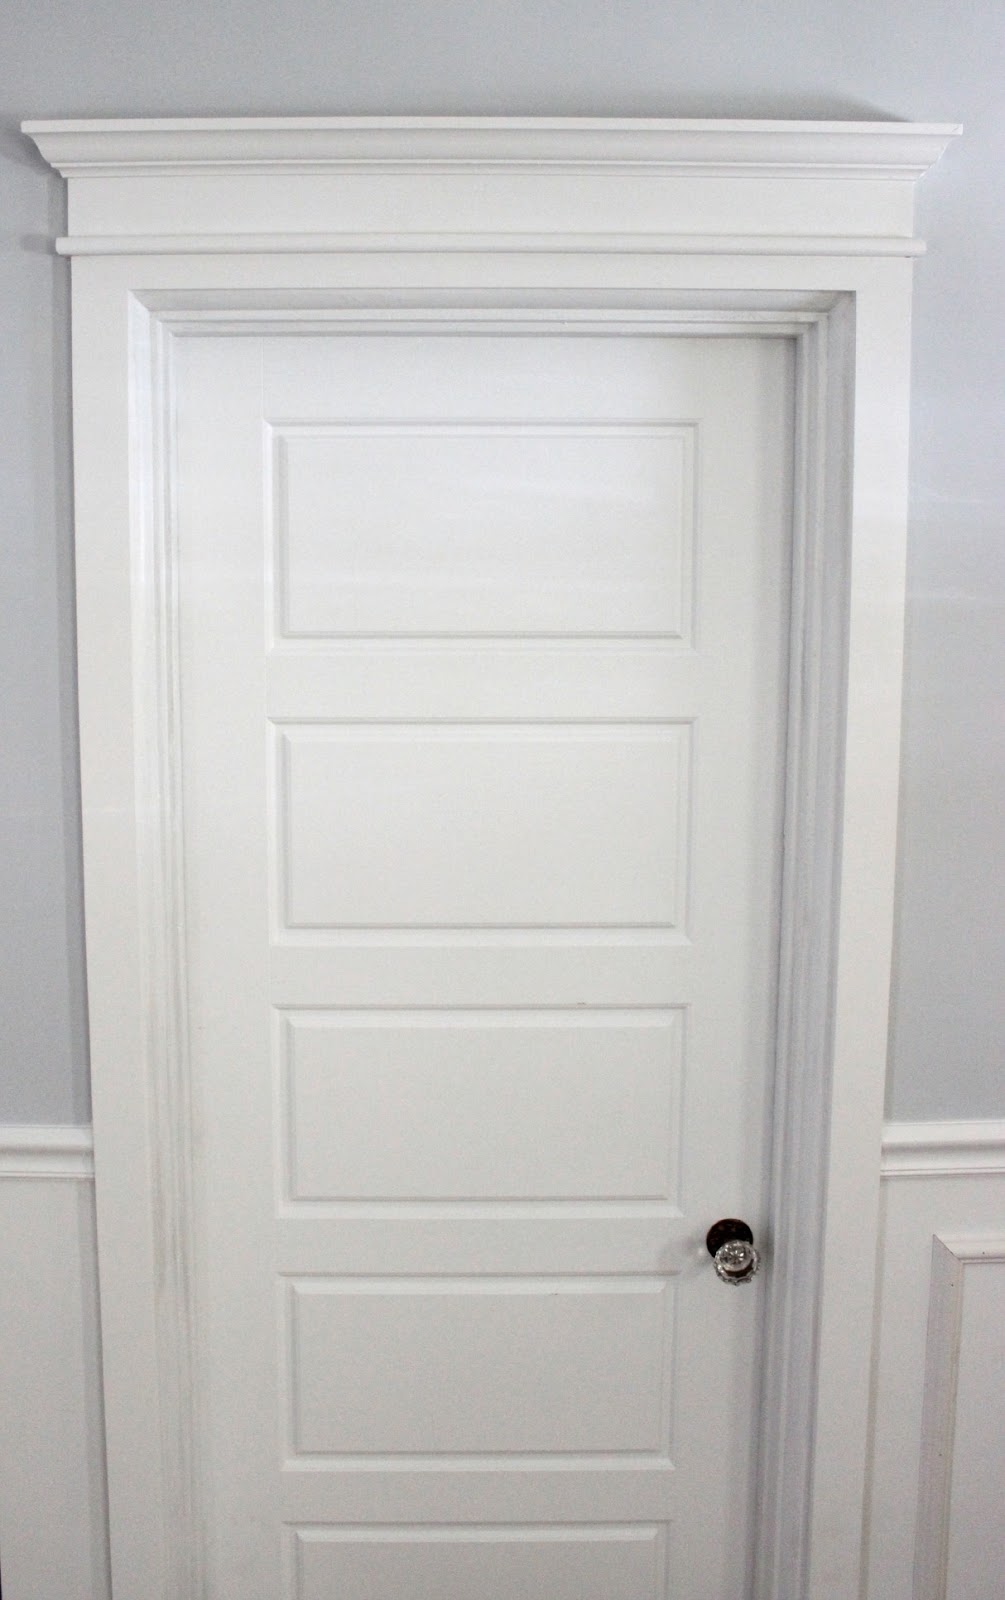 & DIY Door Trim Tutorial - Dream Book Design